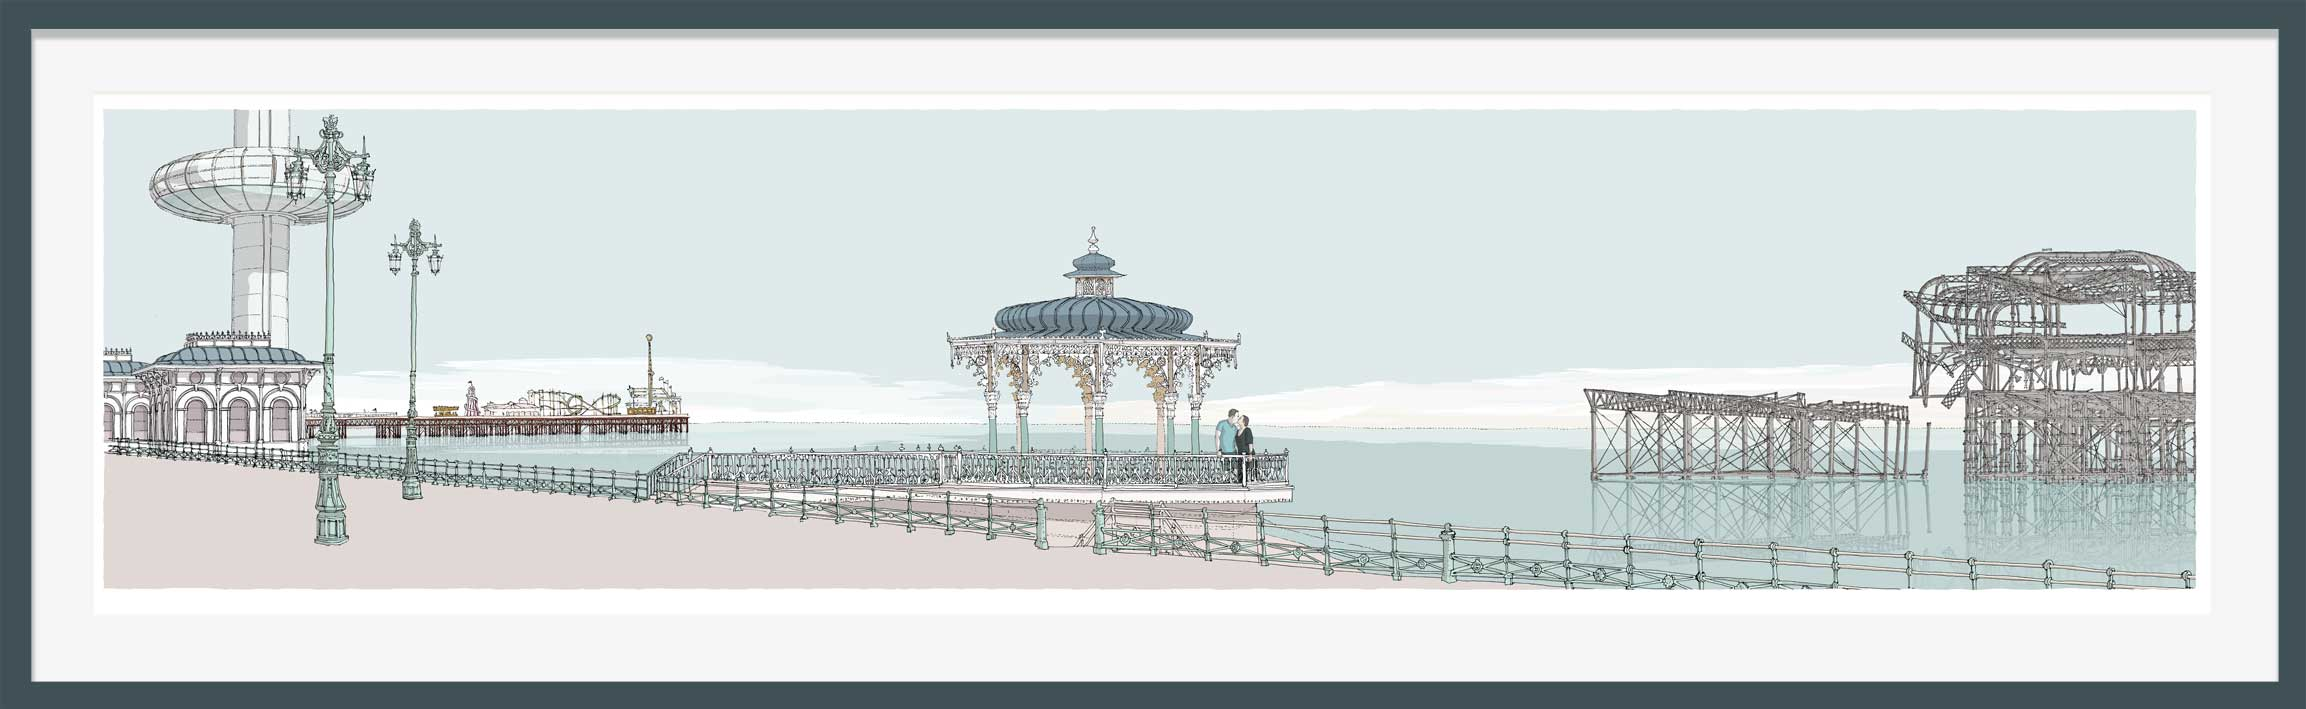 Ii360 Palace Pier Bandstand and West Pier Pebble Beach. Kate and Steve